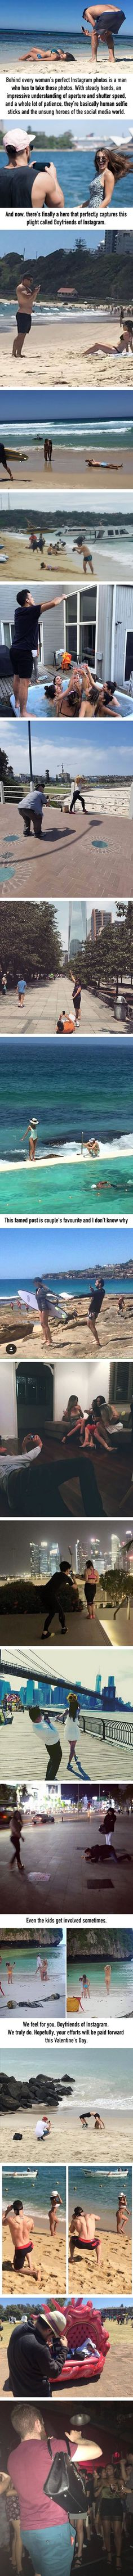 Boyfriends Of Instagram The Unsung Heroes Behind The Camera